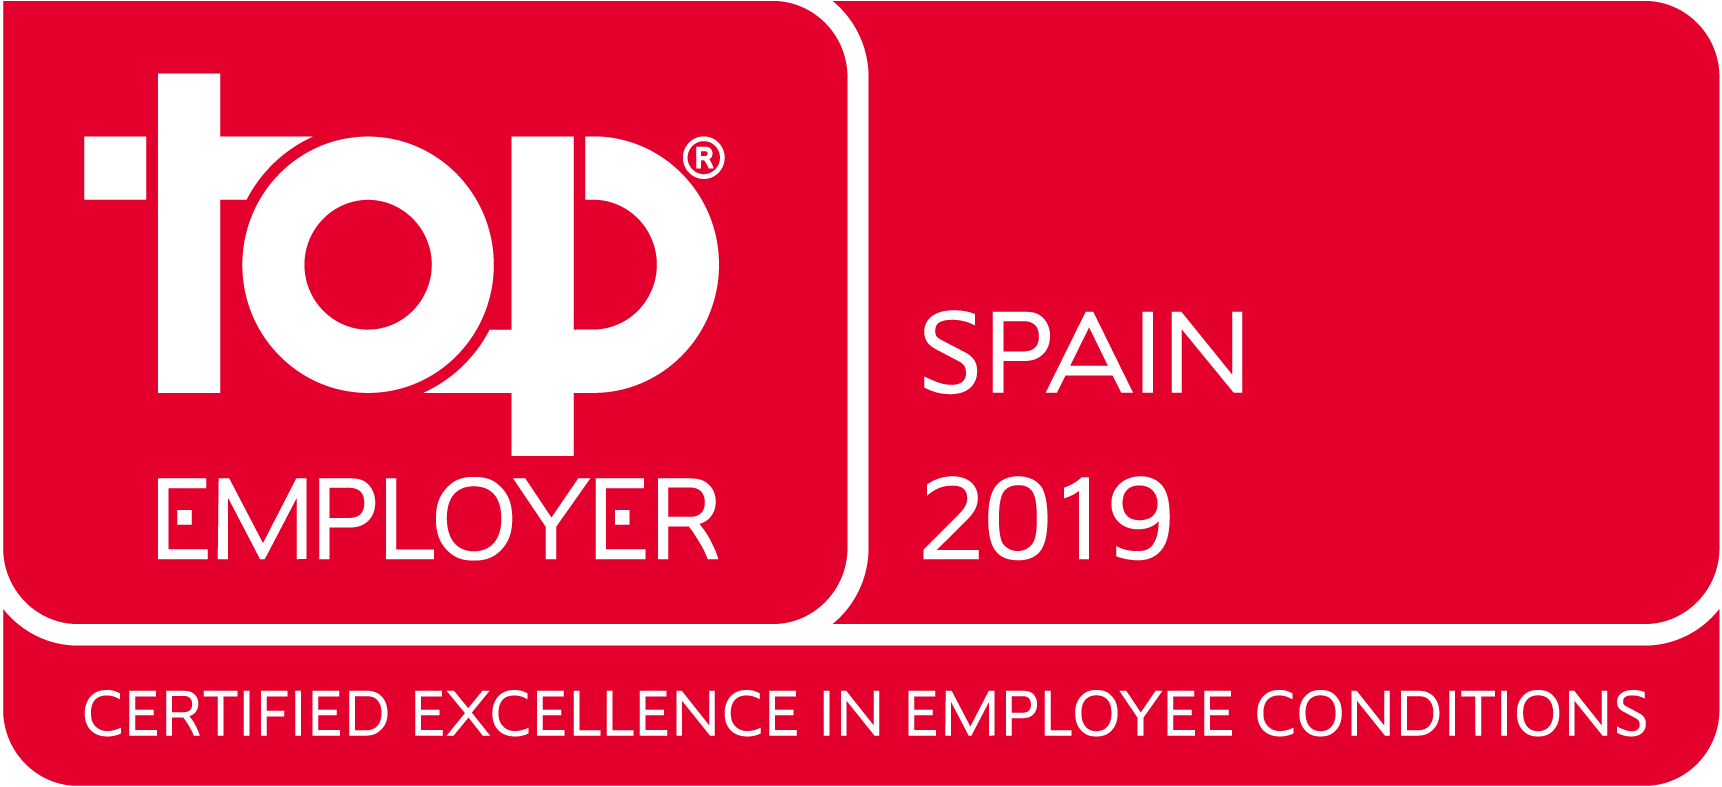 Top employer Spain 2019